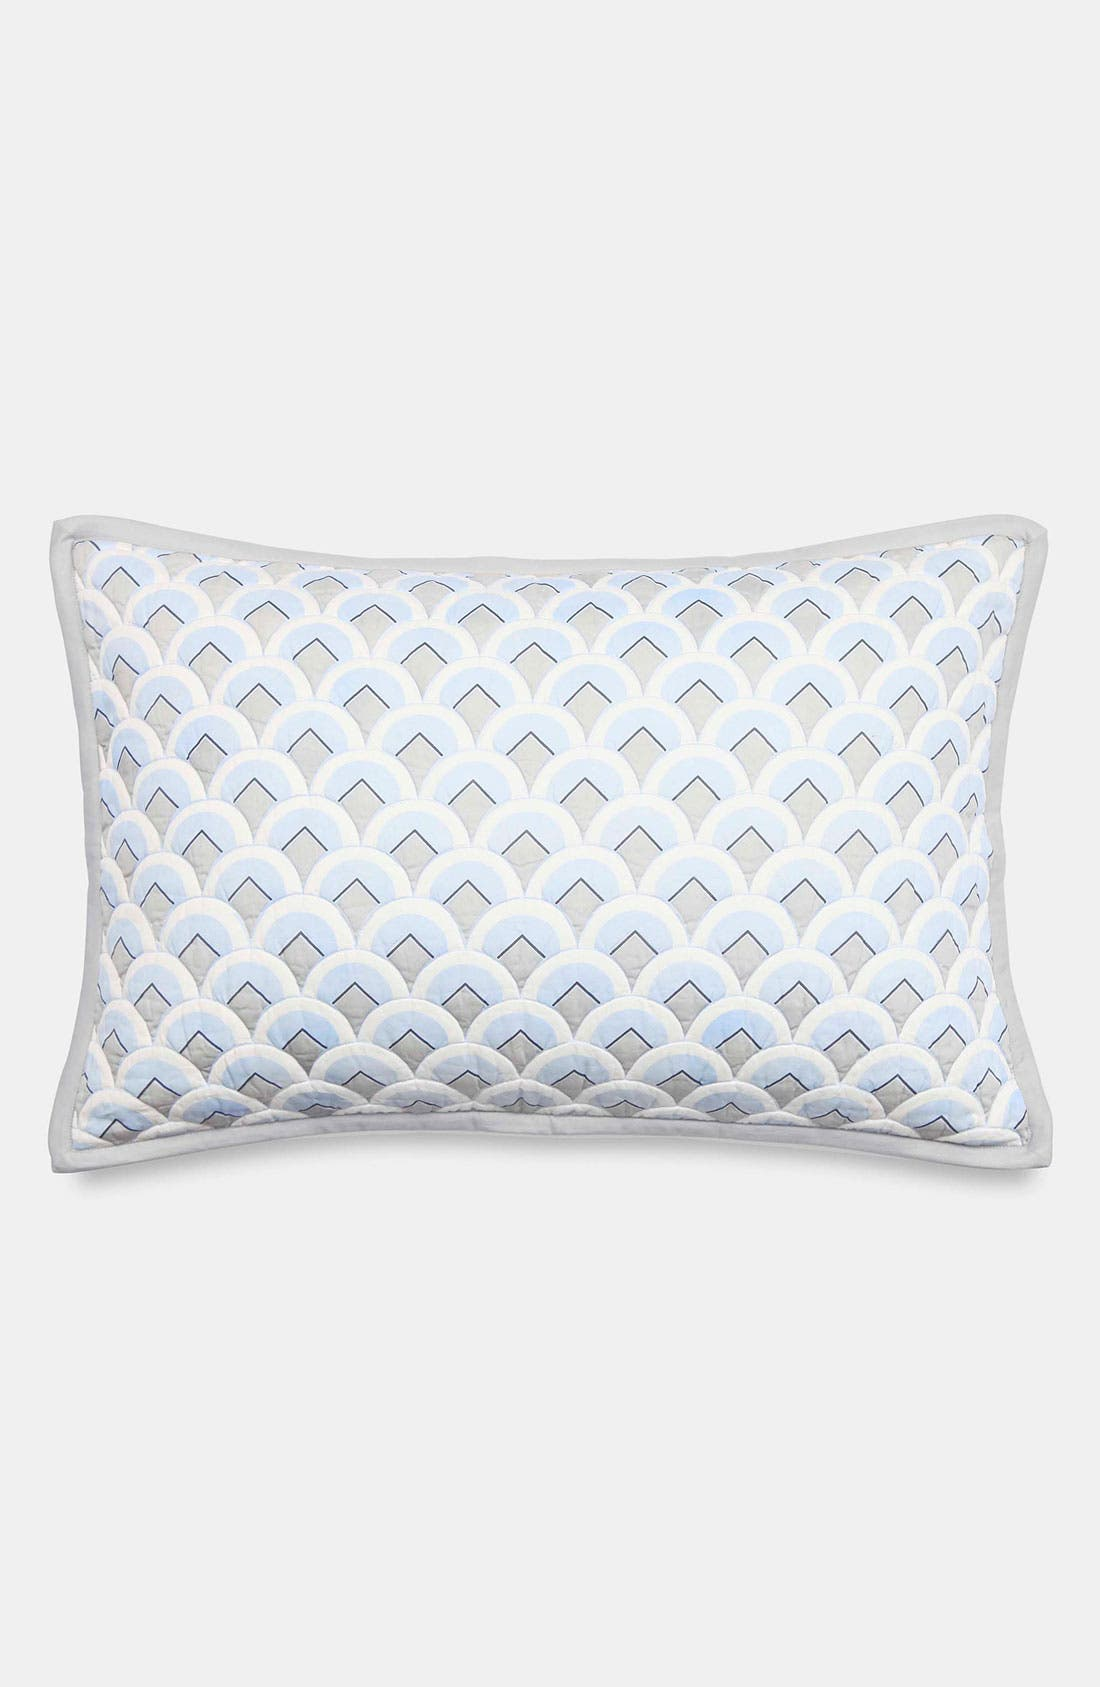 Main Image - kate spade new york 'deco geo' 400 thread count pillow sham